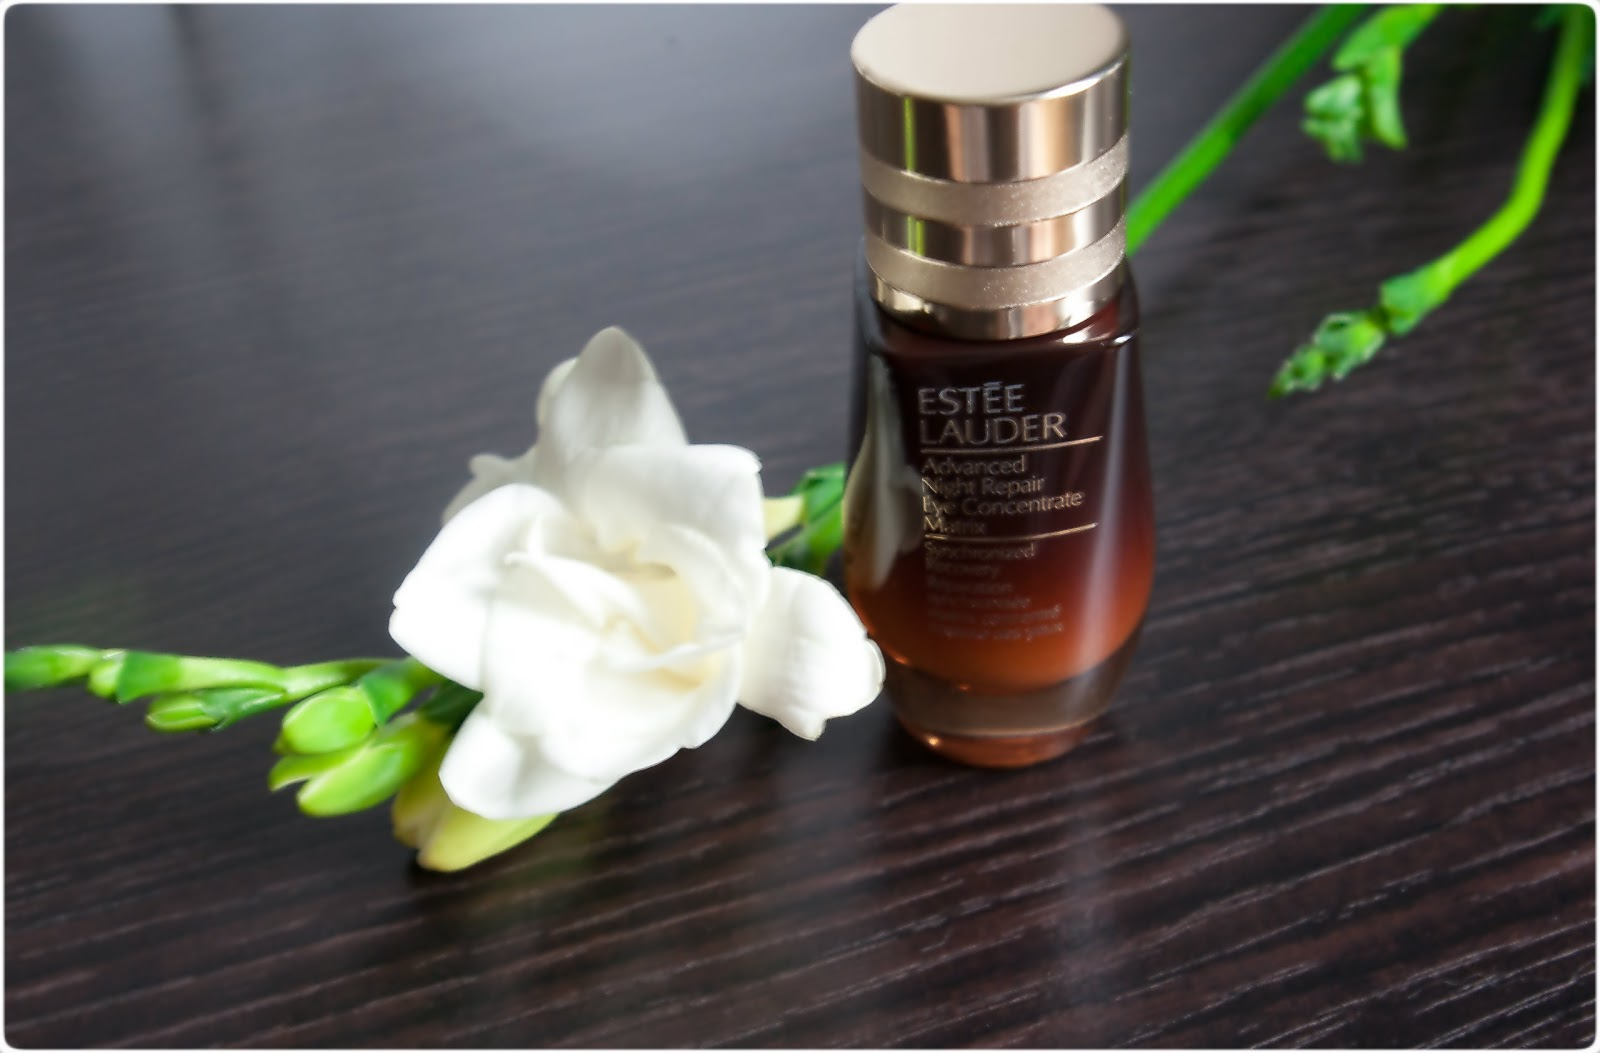 Estee Lauder Advanced Night Repair Eye Concentrate Matrix